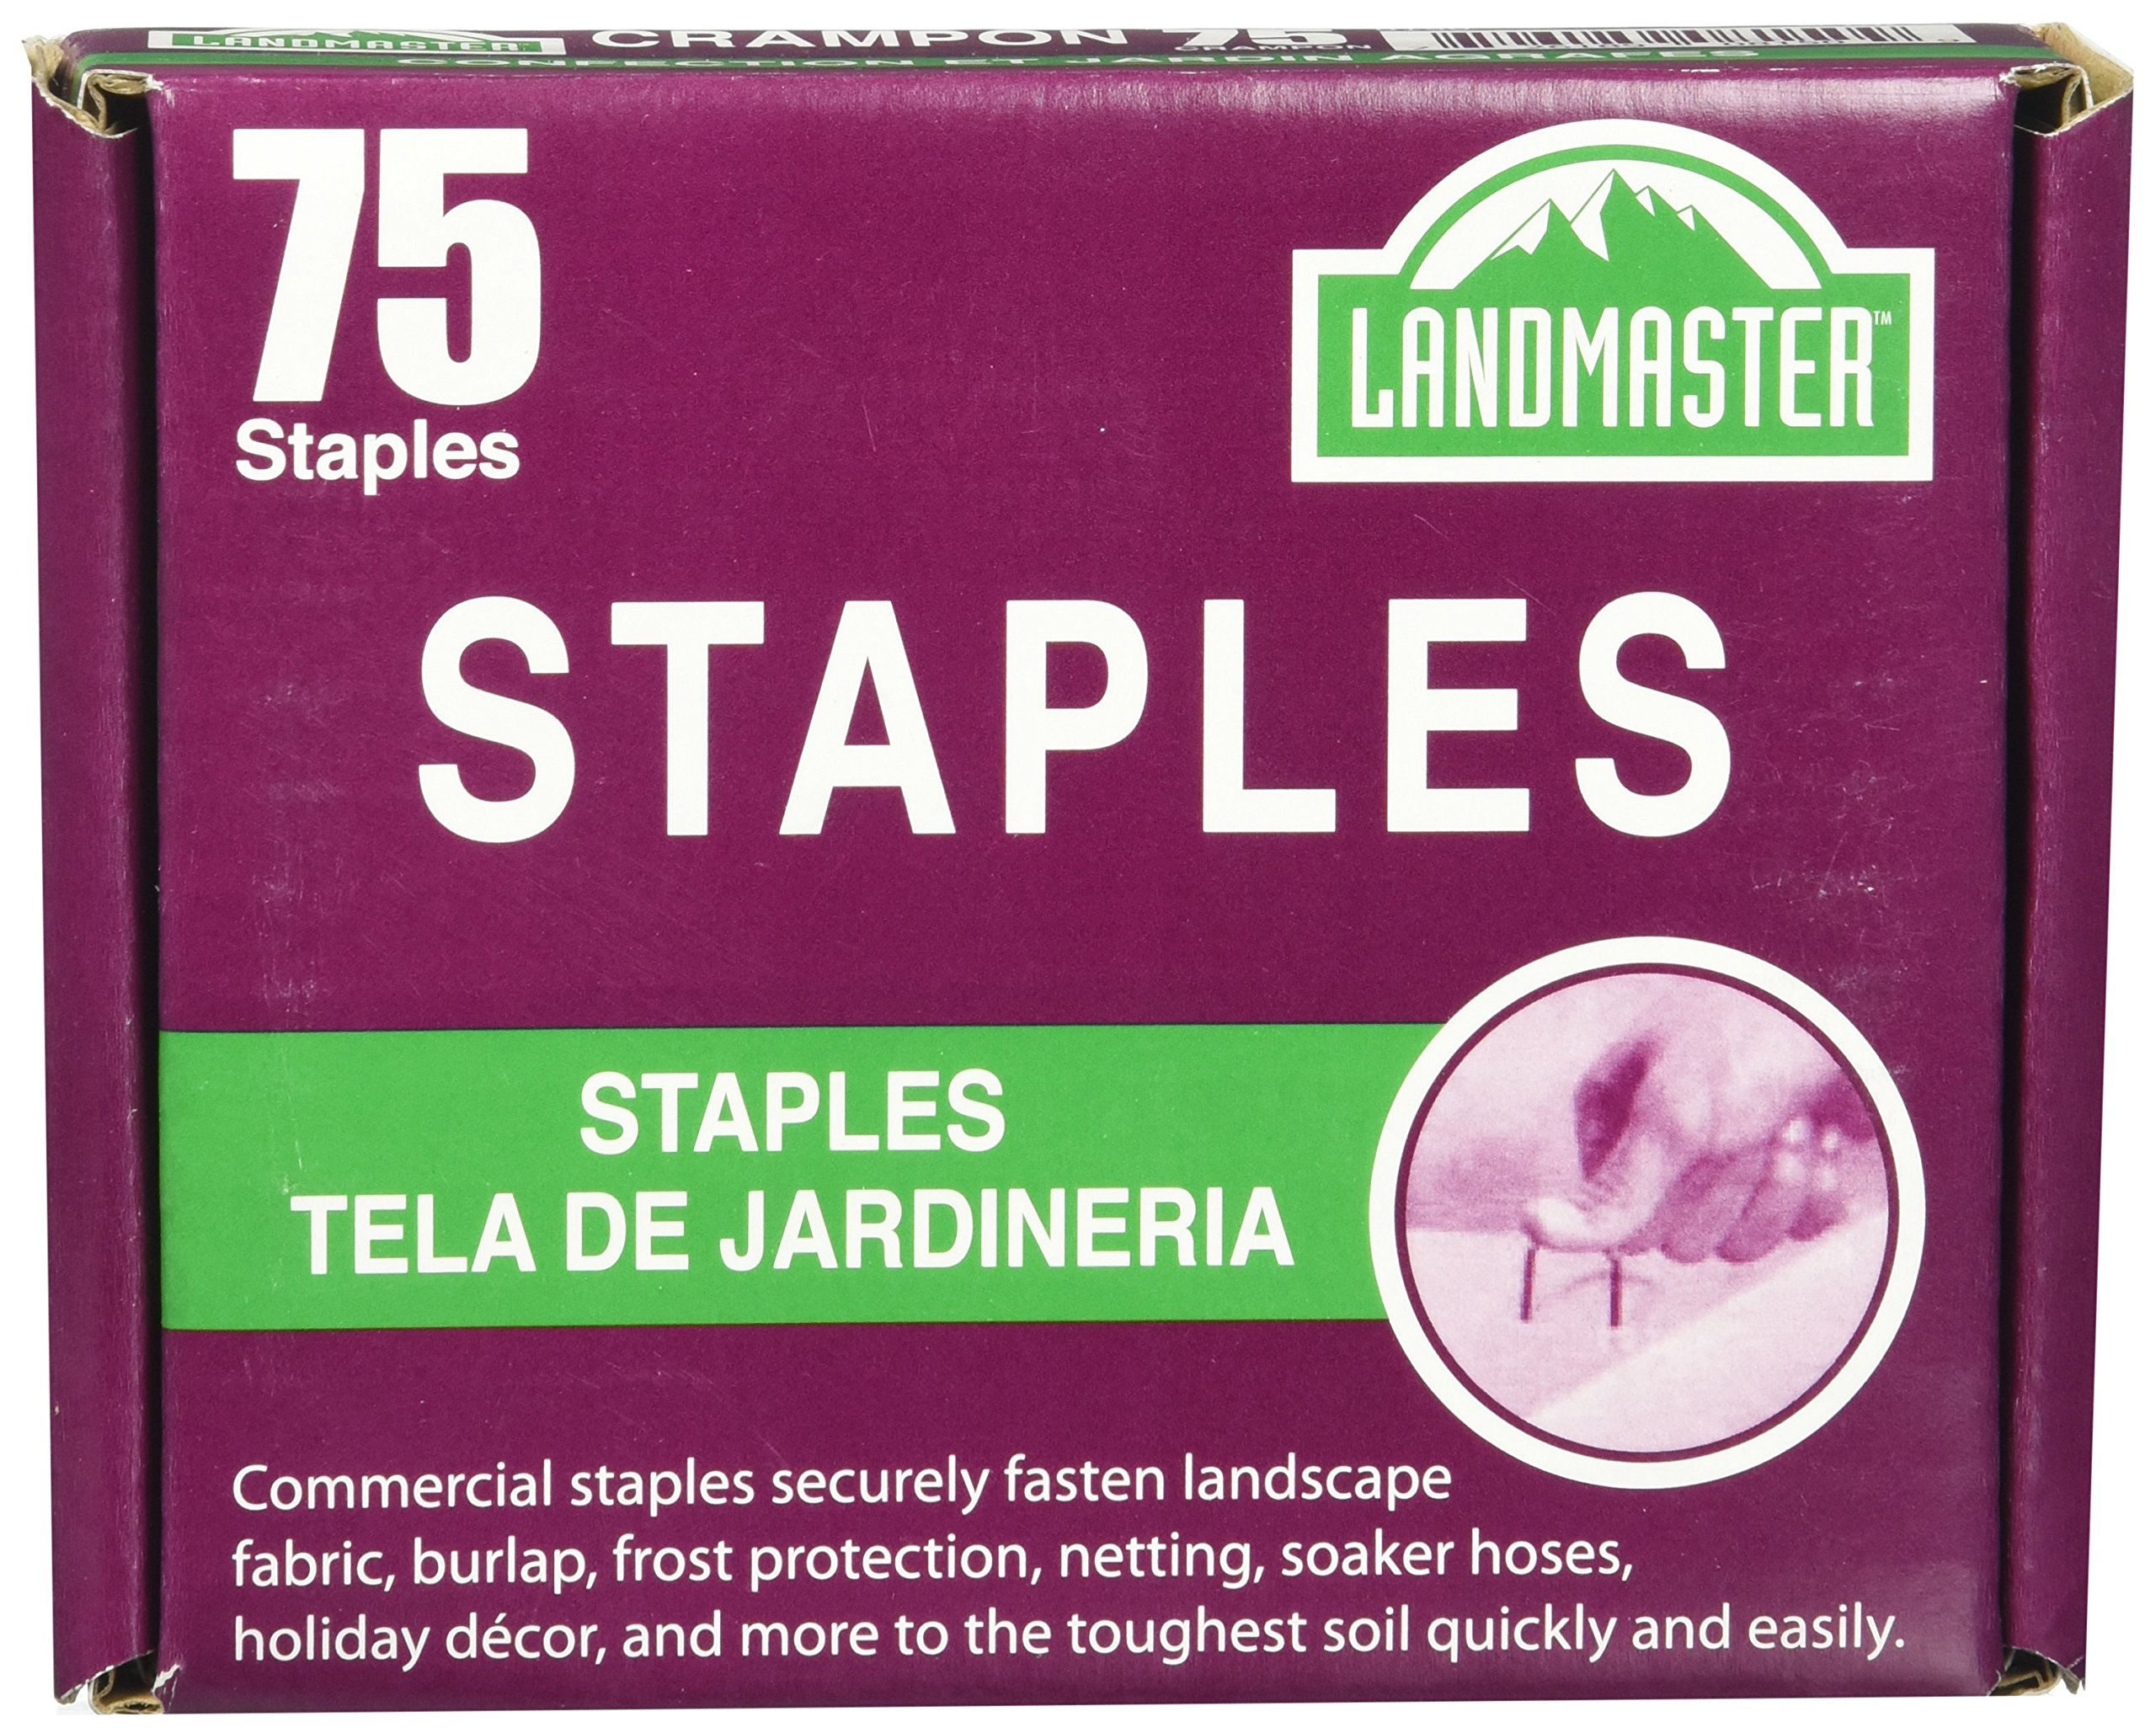 Easy Gardener 815 038398008155 Fabric Garden Staples Attaches Landscape Fabric And Turf To Soil 4 75 Silver Buy Online In Barbados At Barbados Desertcart Com Productid 673123